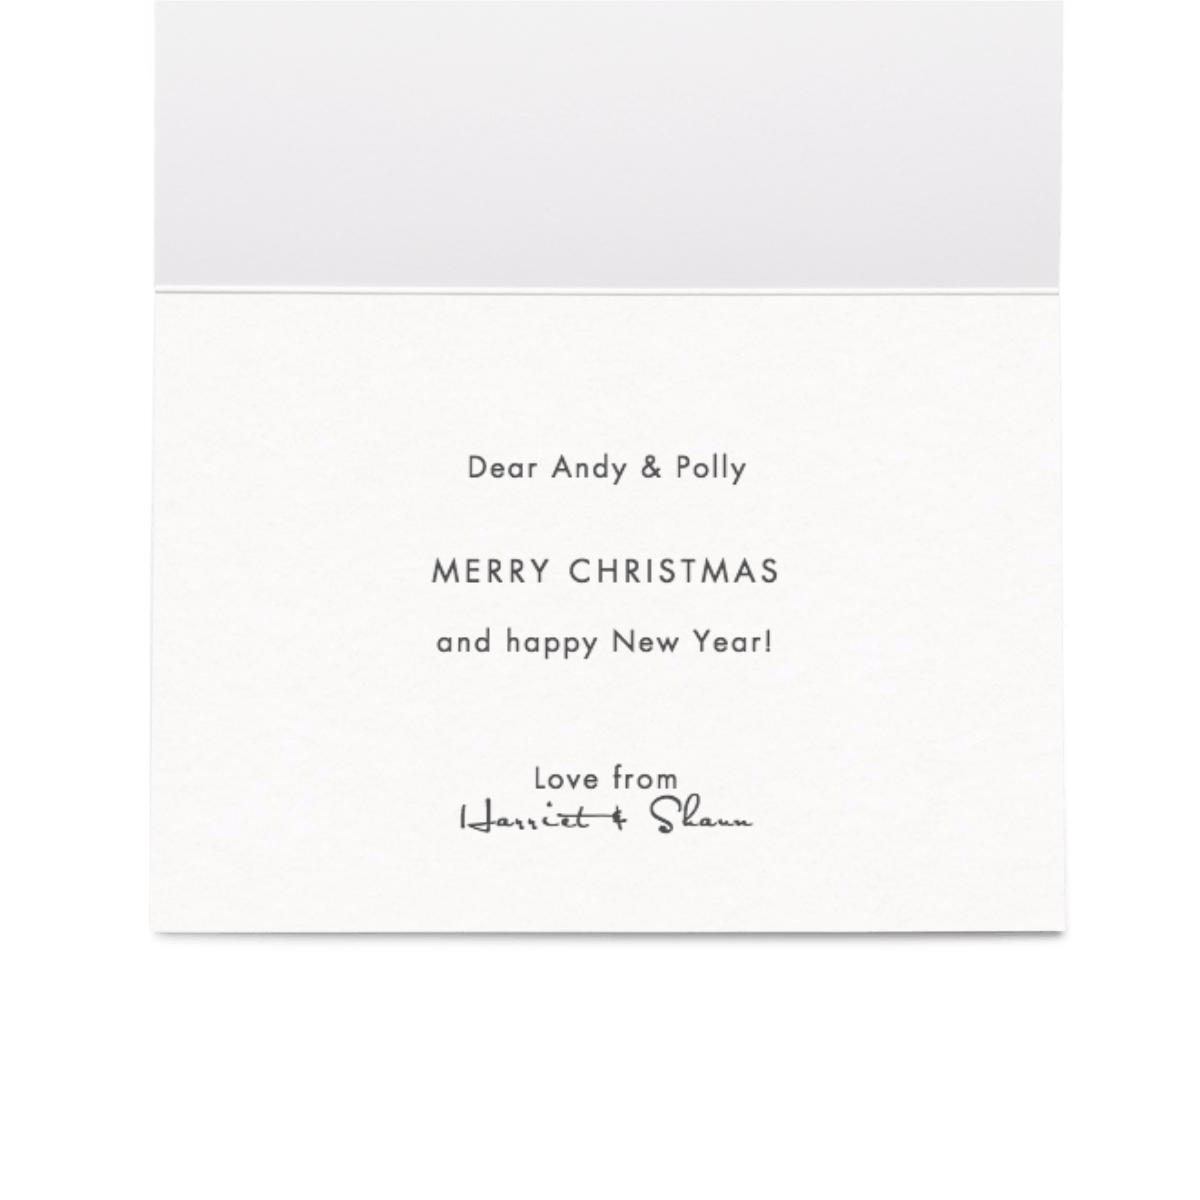 Https%3a%2f%2fwww.papier.com%2fproduct image%2f24660%2f20%2fhappy christmas dog 6164 inside 1507210099.png?ixlib=rb 1.1